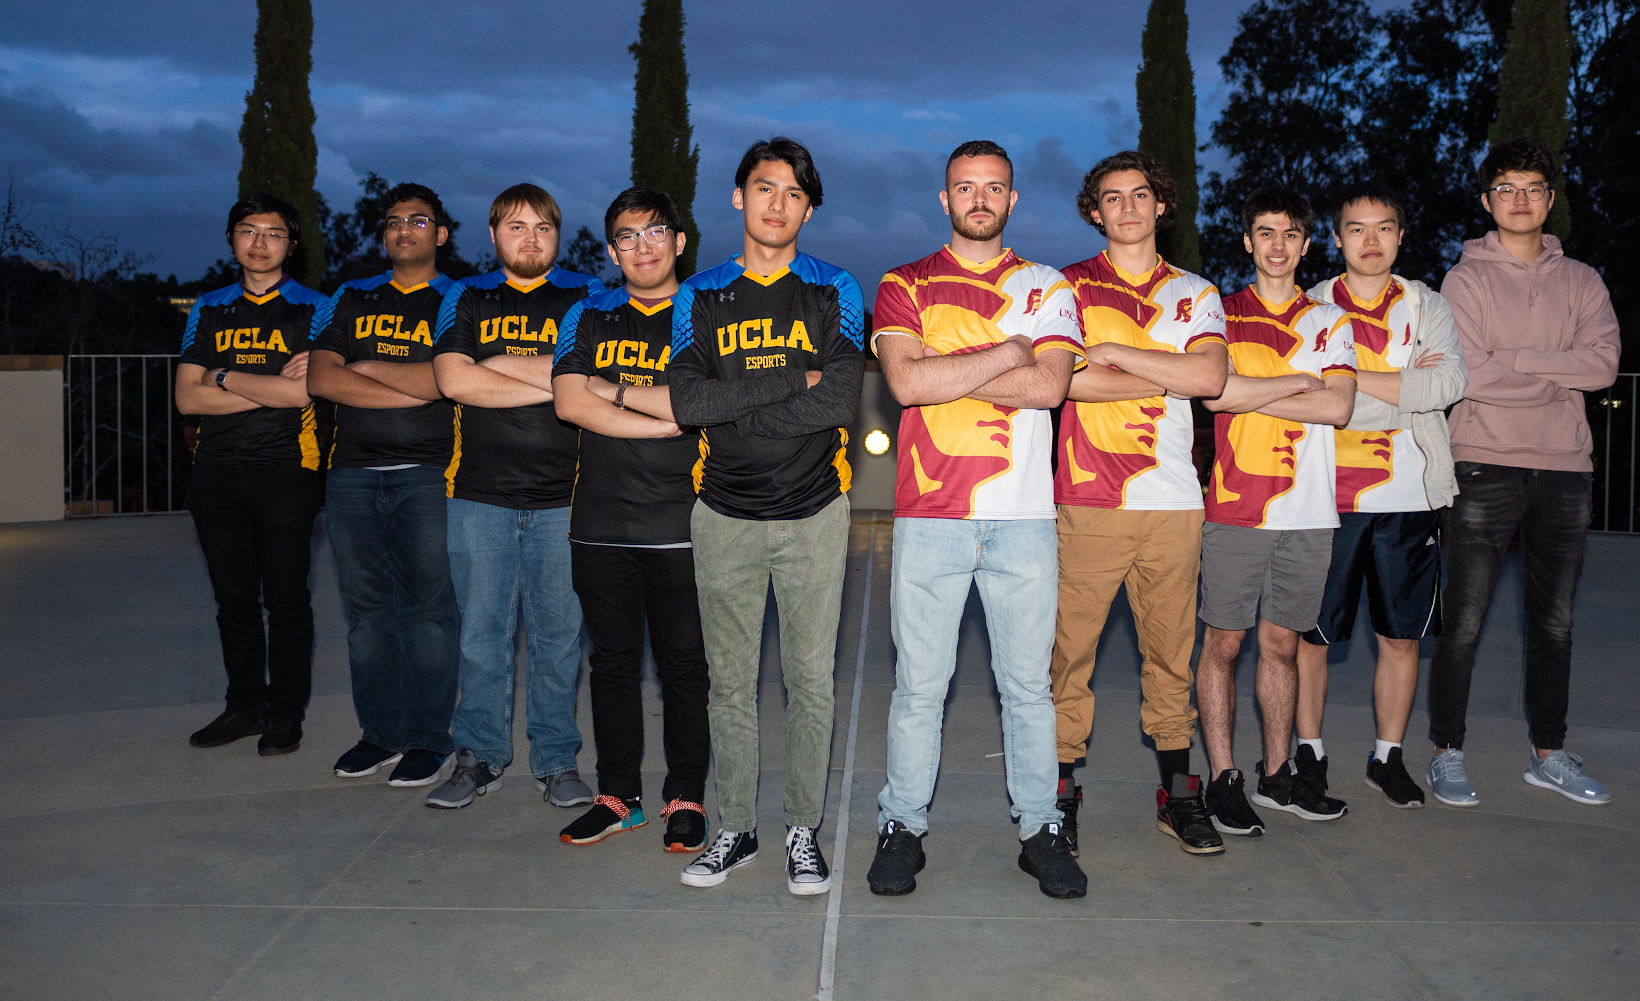 UCLA and USC esports teams